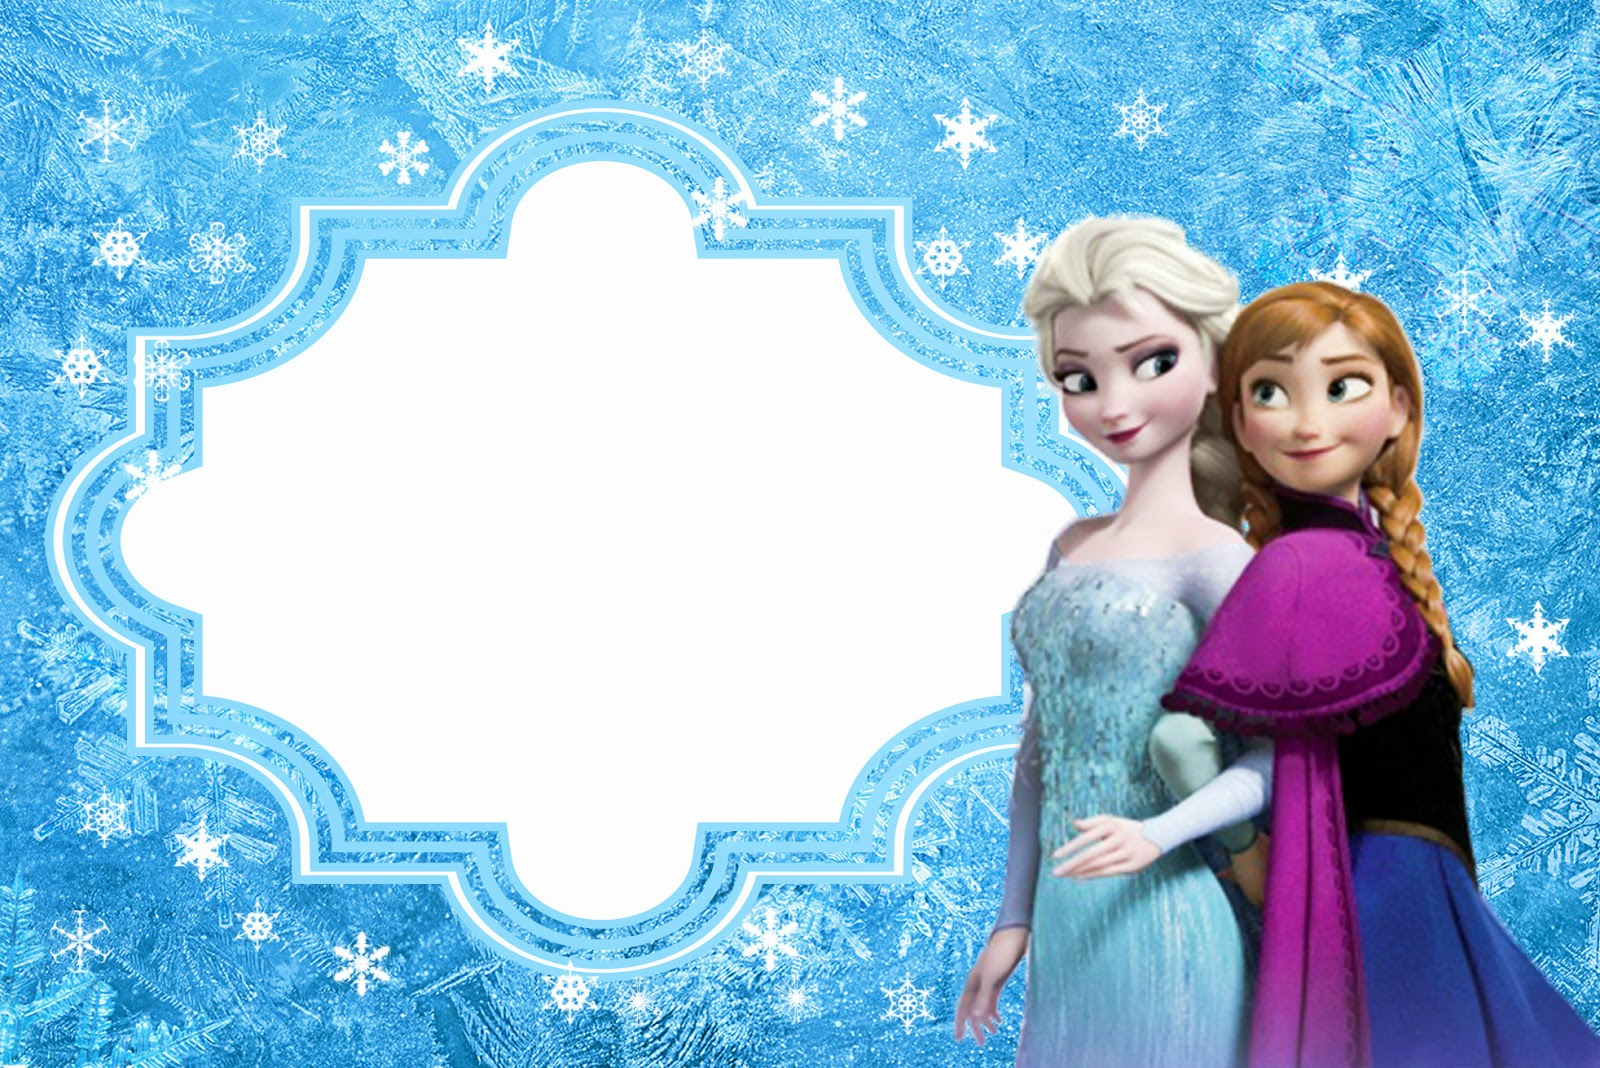 Frozen birthday card template yeniscale frozen birthday card template stopboris Image collections